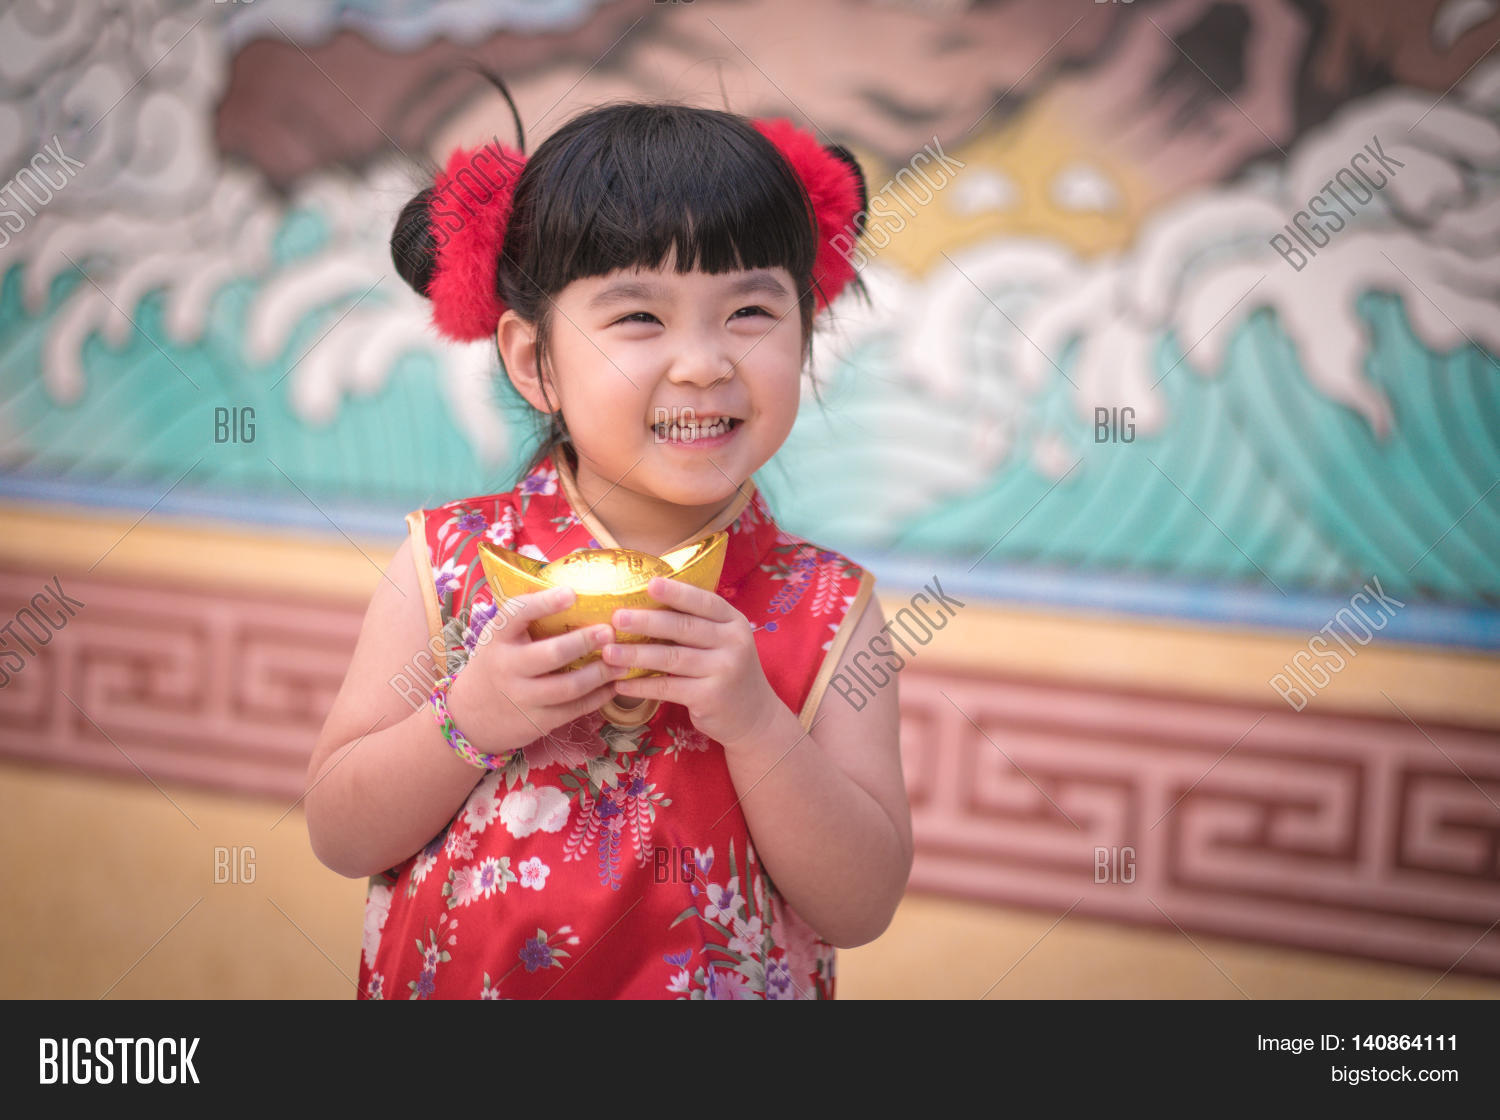 China girl traditional image photo free trial bigstock china girl in traditional chinese dress greeting holding a gold ingot standing m4hsunfo